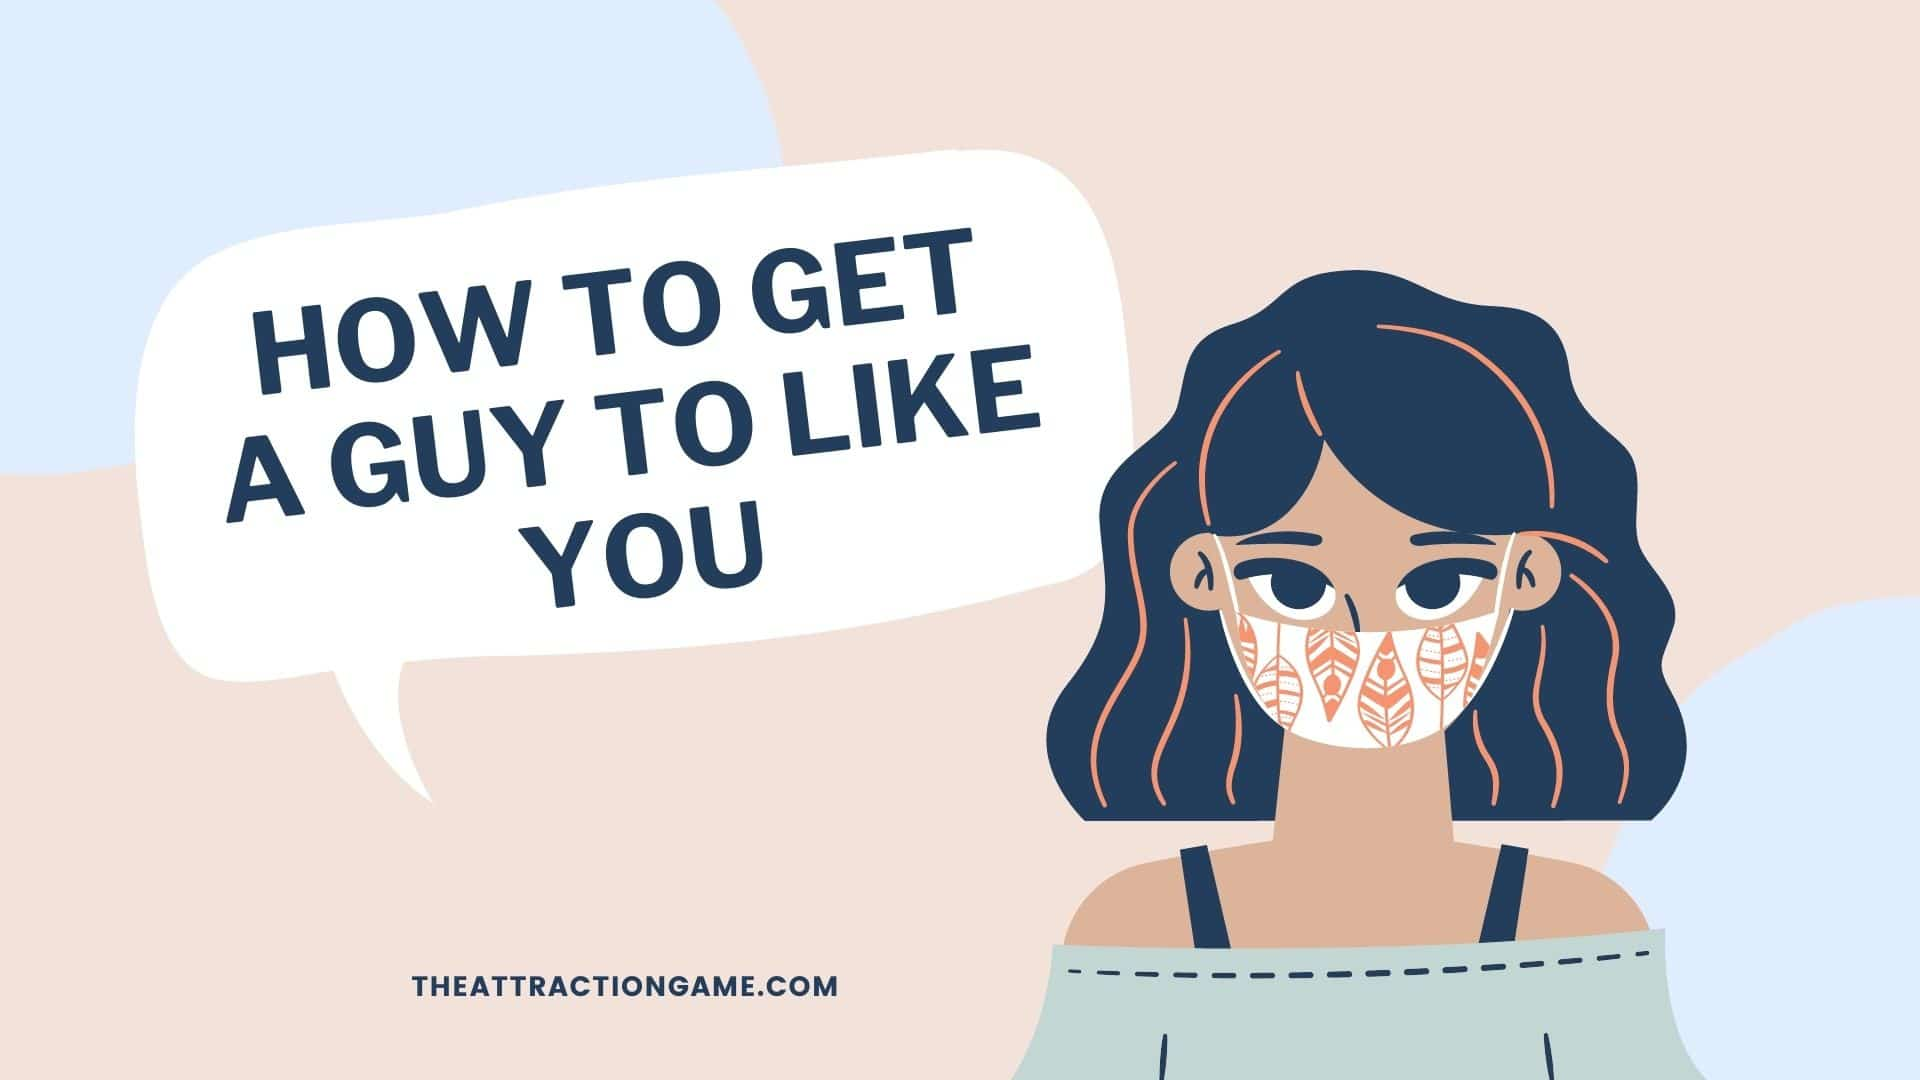 get a guy to like you, make him like, how to get him to like you, how to get a man to like you, tips on getting him to like you, how to get him to like you